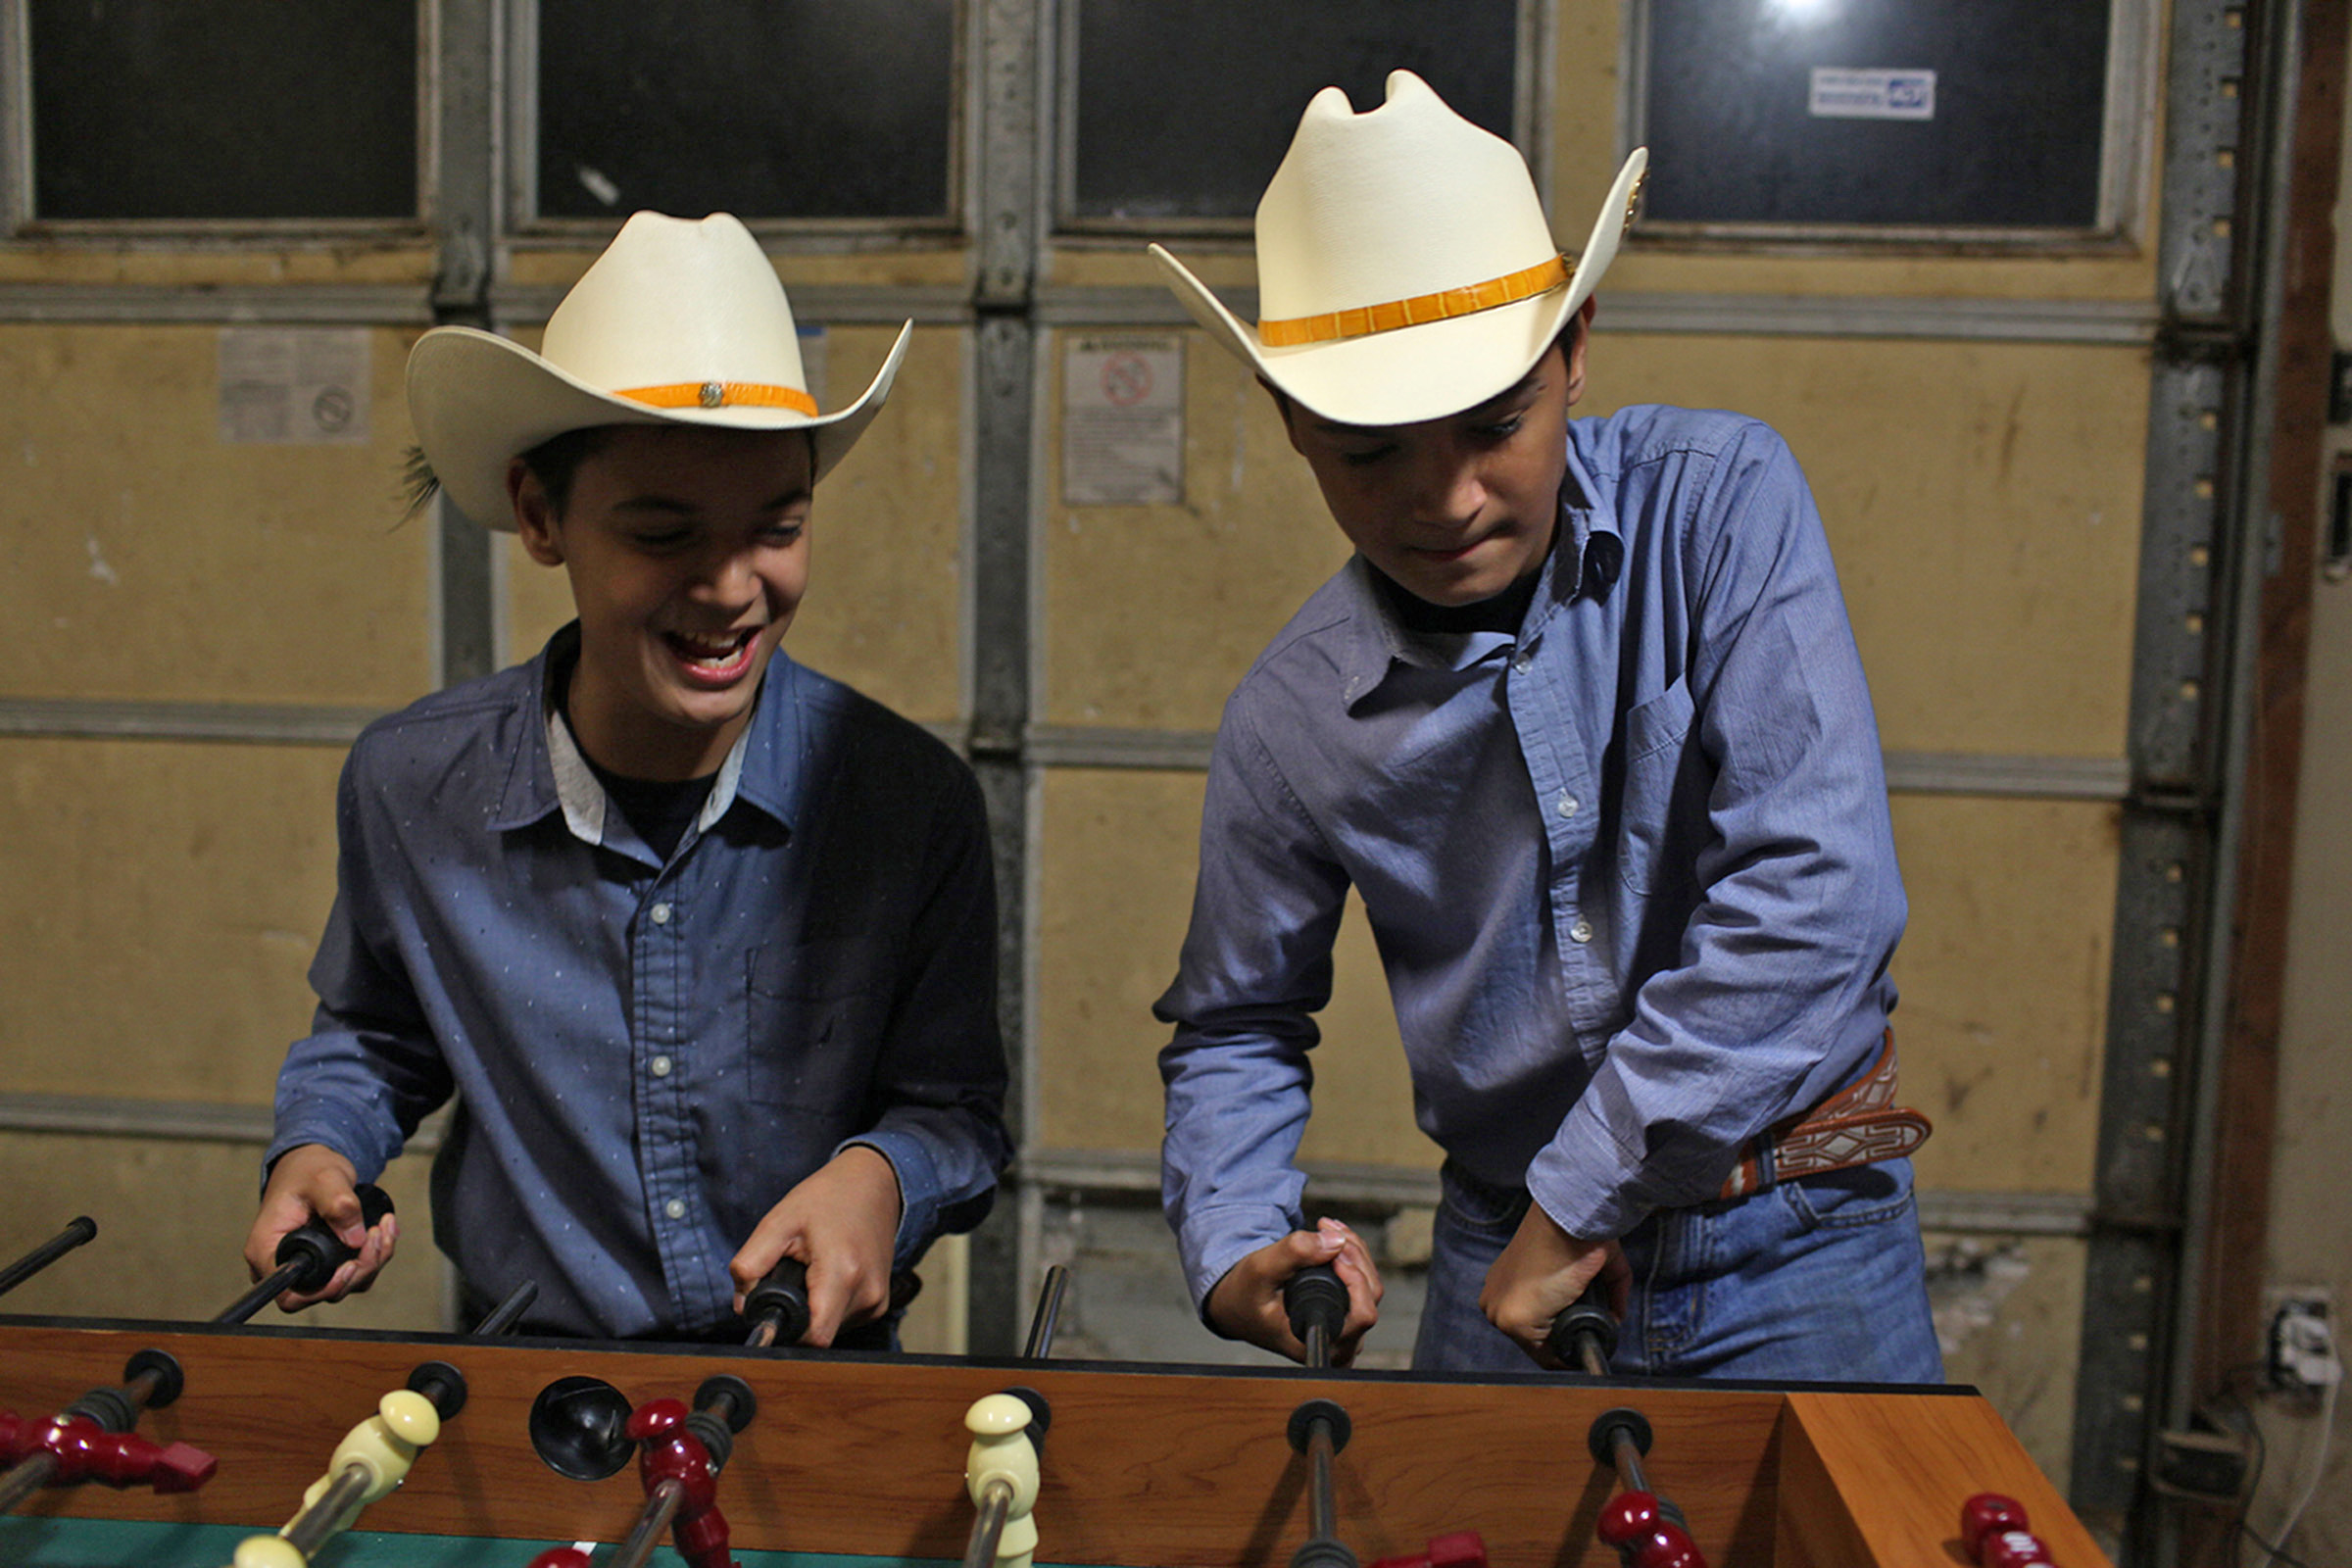 At a party the 12-years old twins Jared Valuenza, left, and Fabian Valuenza, right, played foosball on the family ranch in Bowling Green, KY in January, 2016. (Photo By Betina Garcia/Groundtruth).